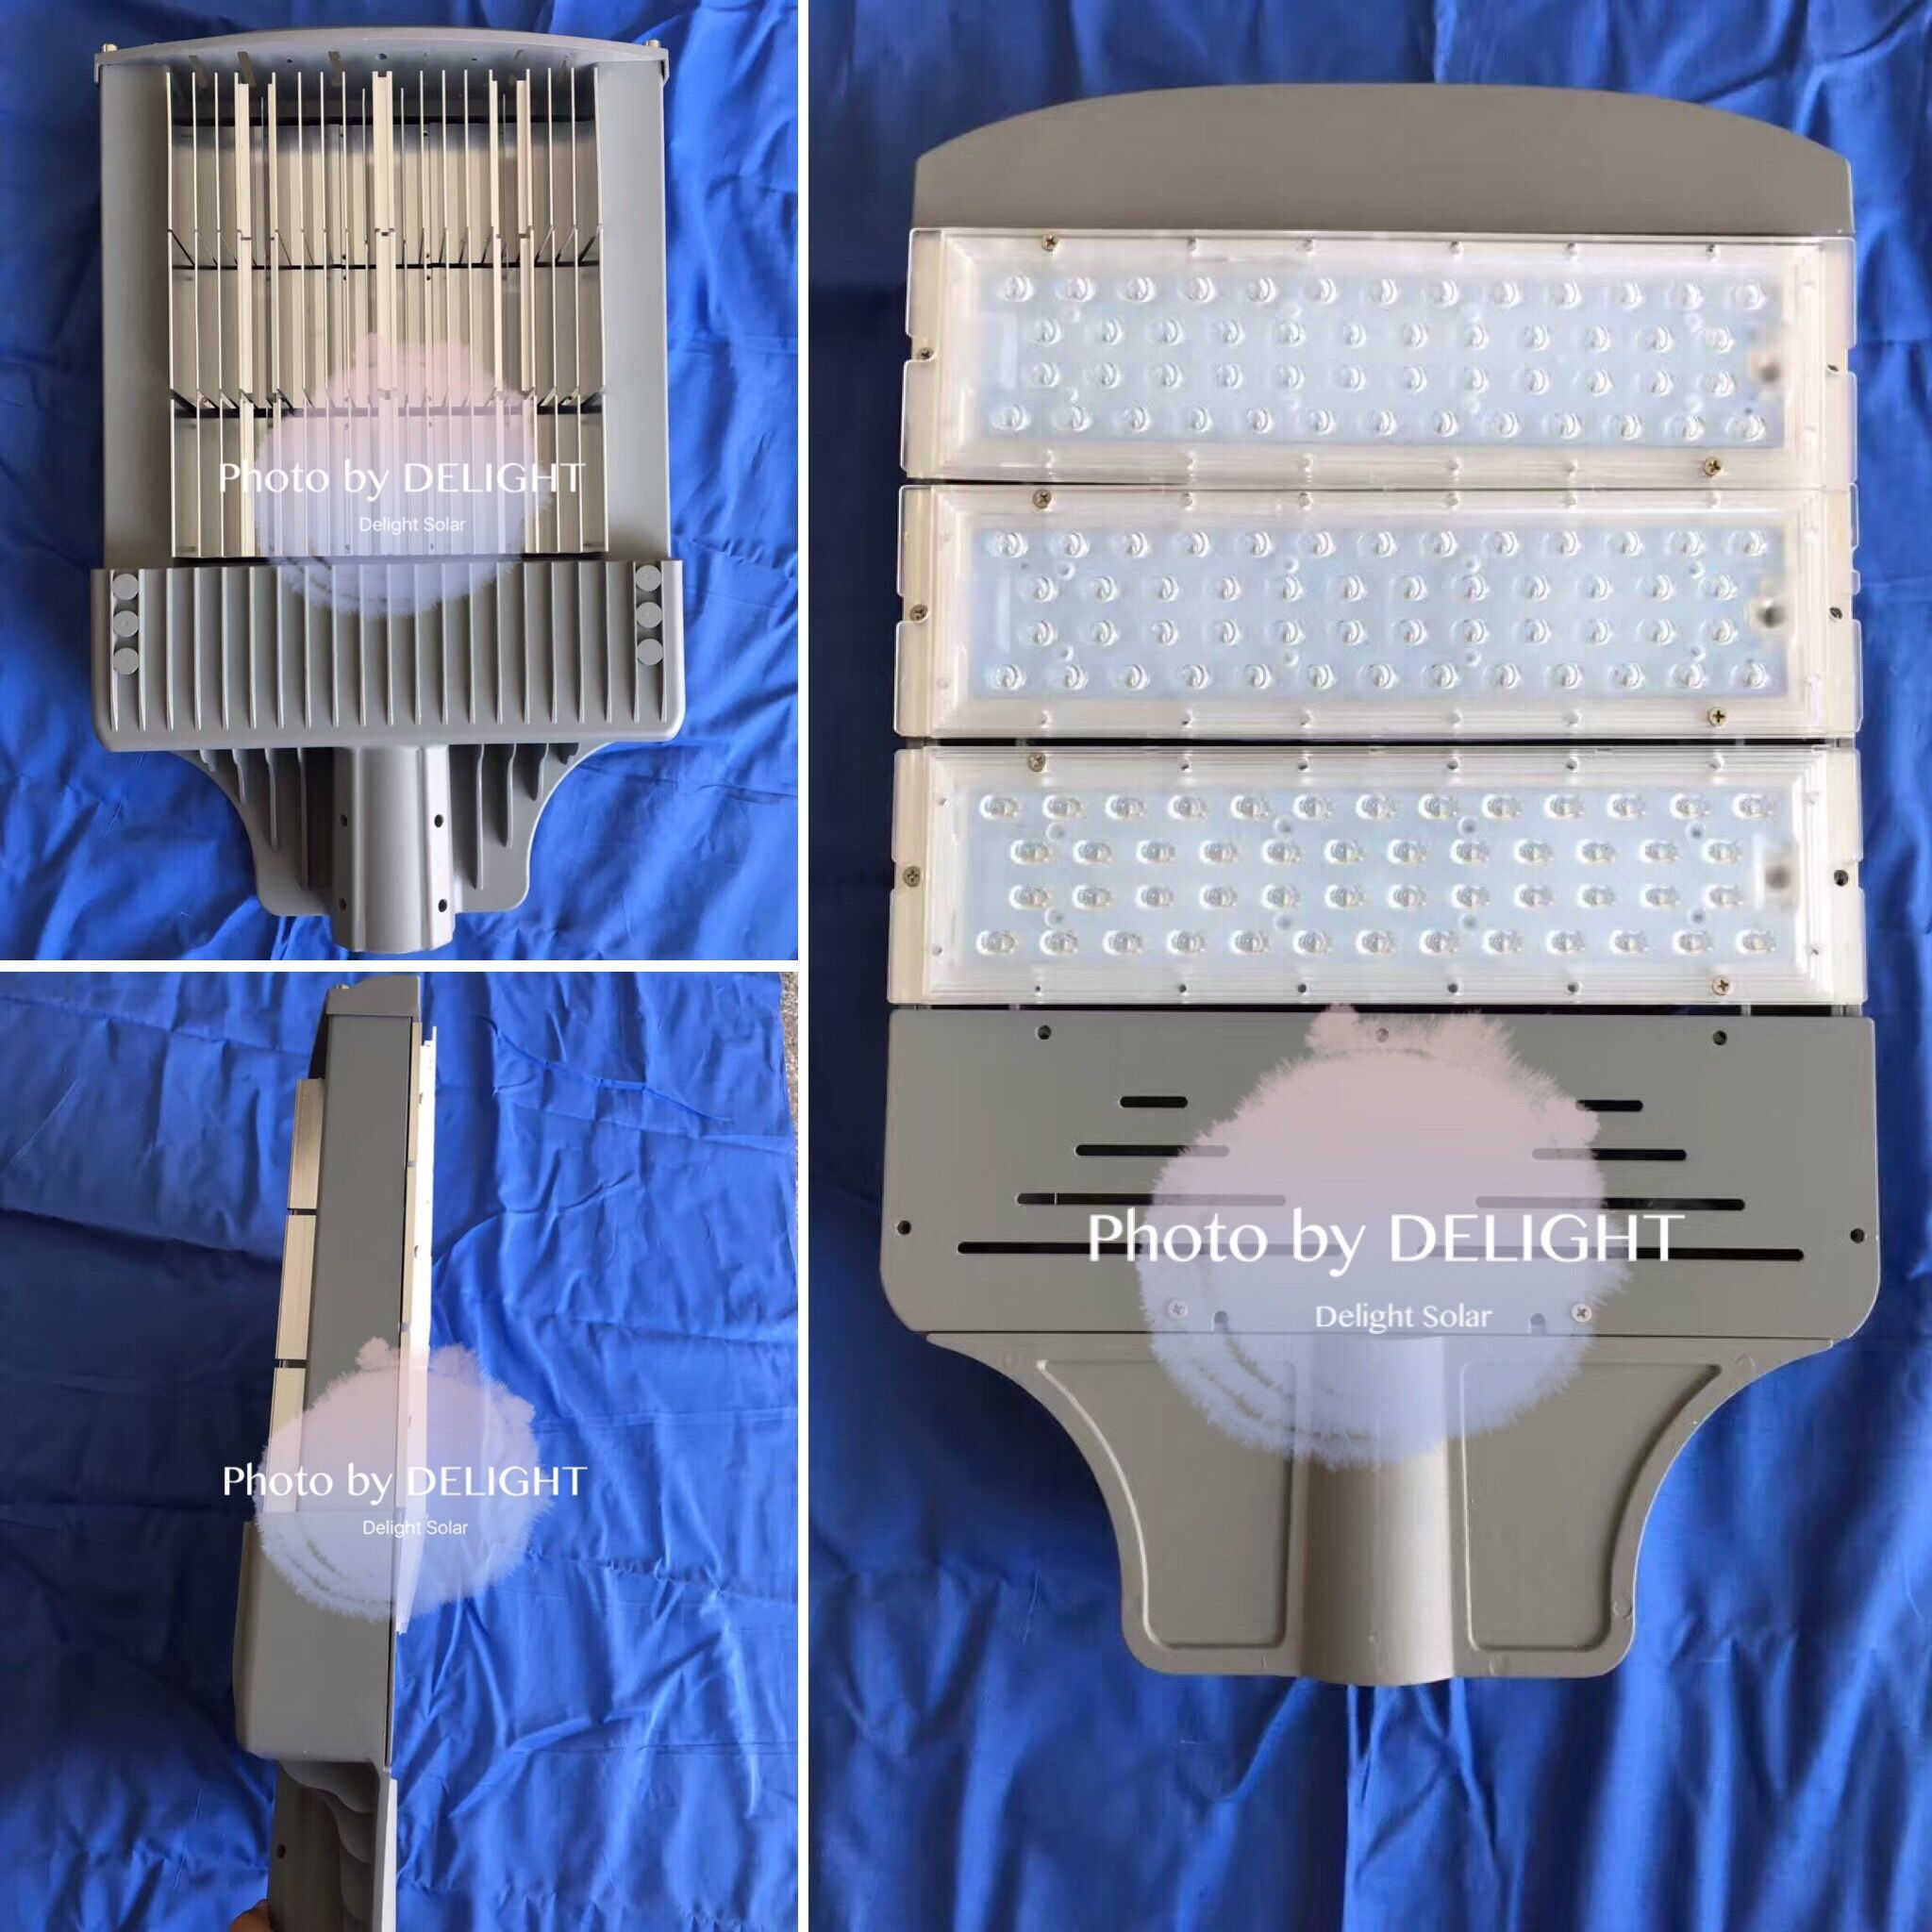 LED module street light manufactured by DELIGHT